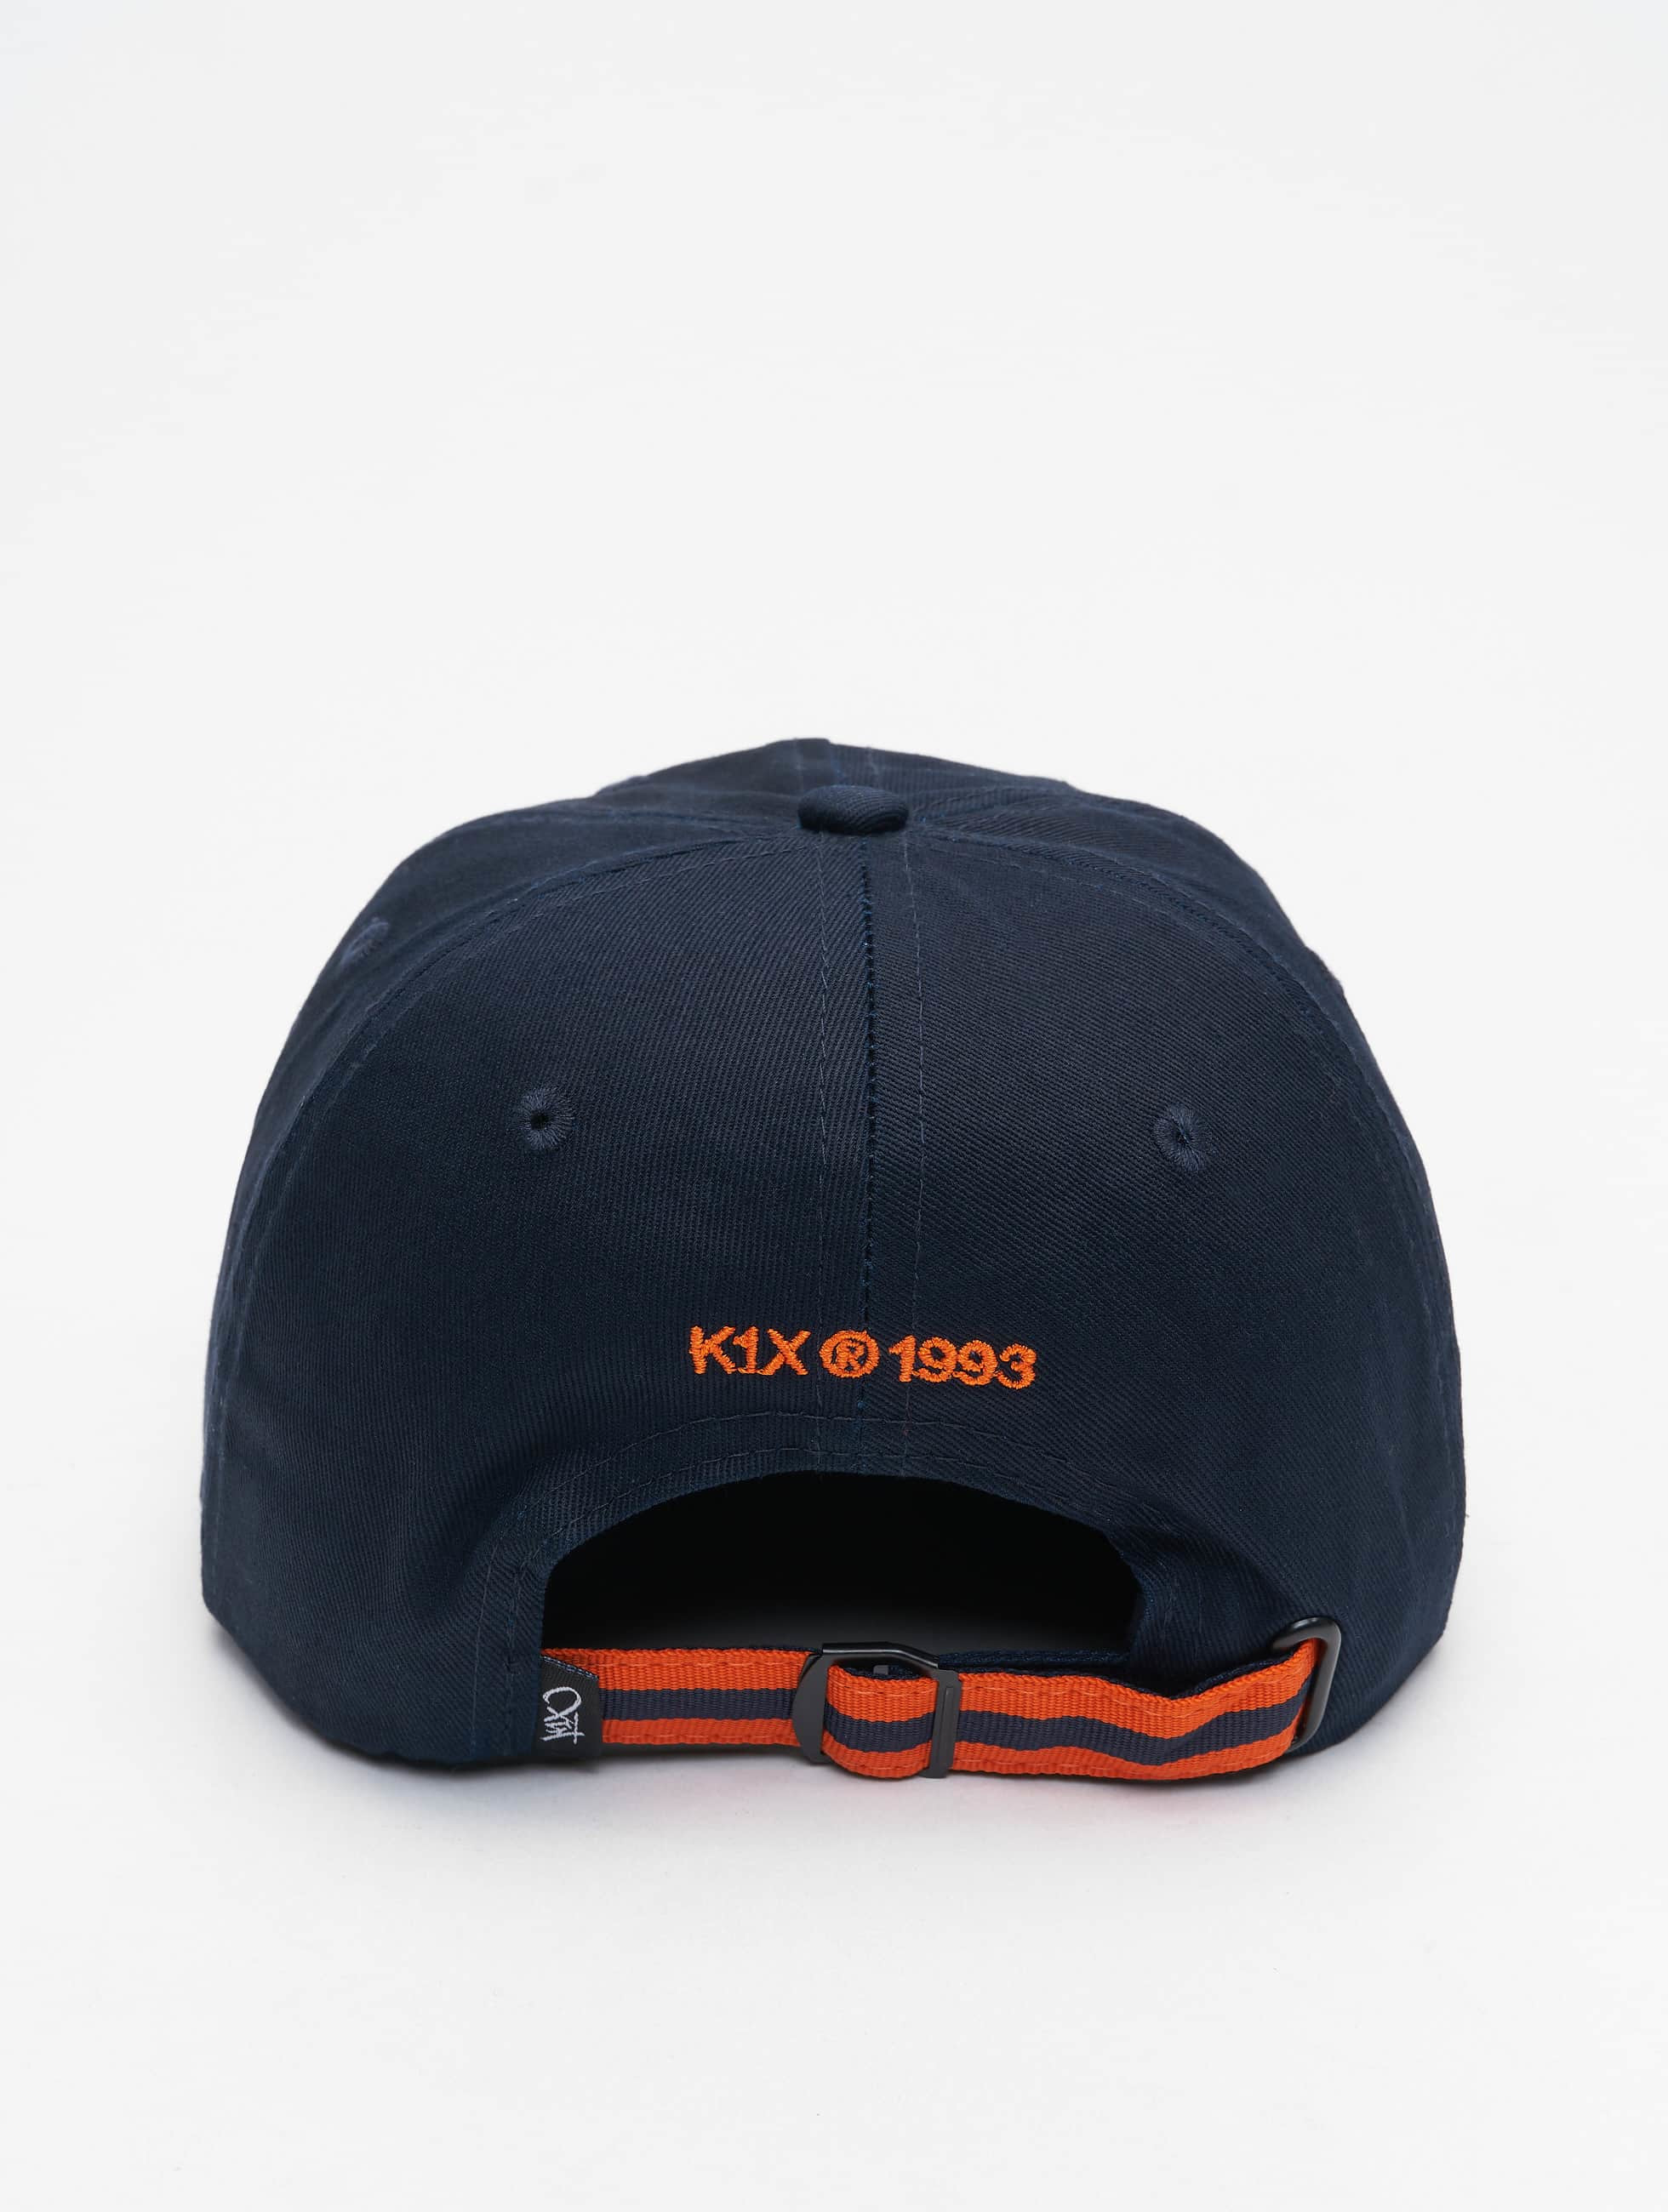 K1X Snapback Caps Play Hard Basketball Sports blå